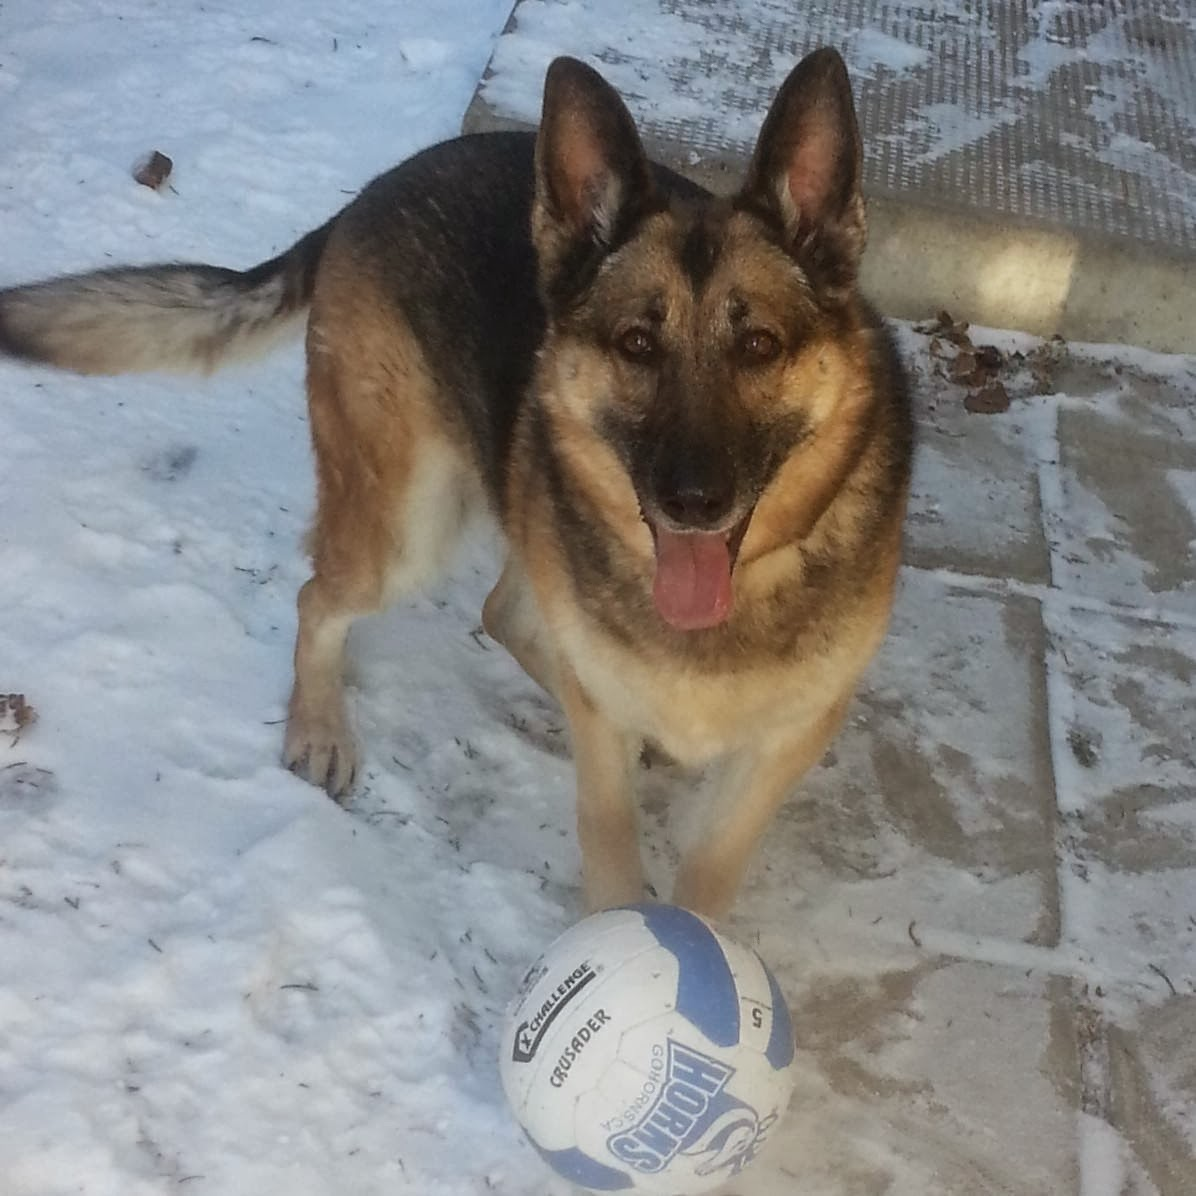 Cute dogs - part 9 (50 pics), german shepherd plays with ball